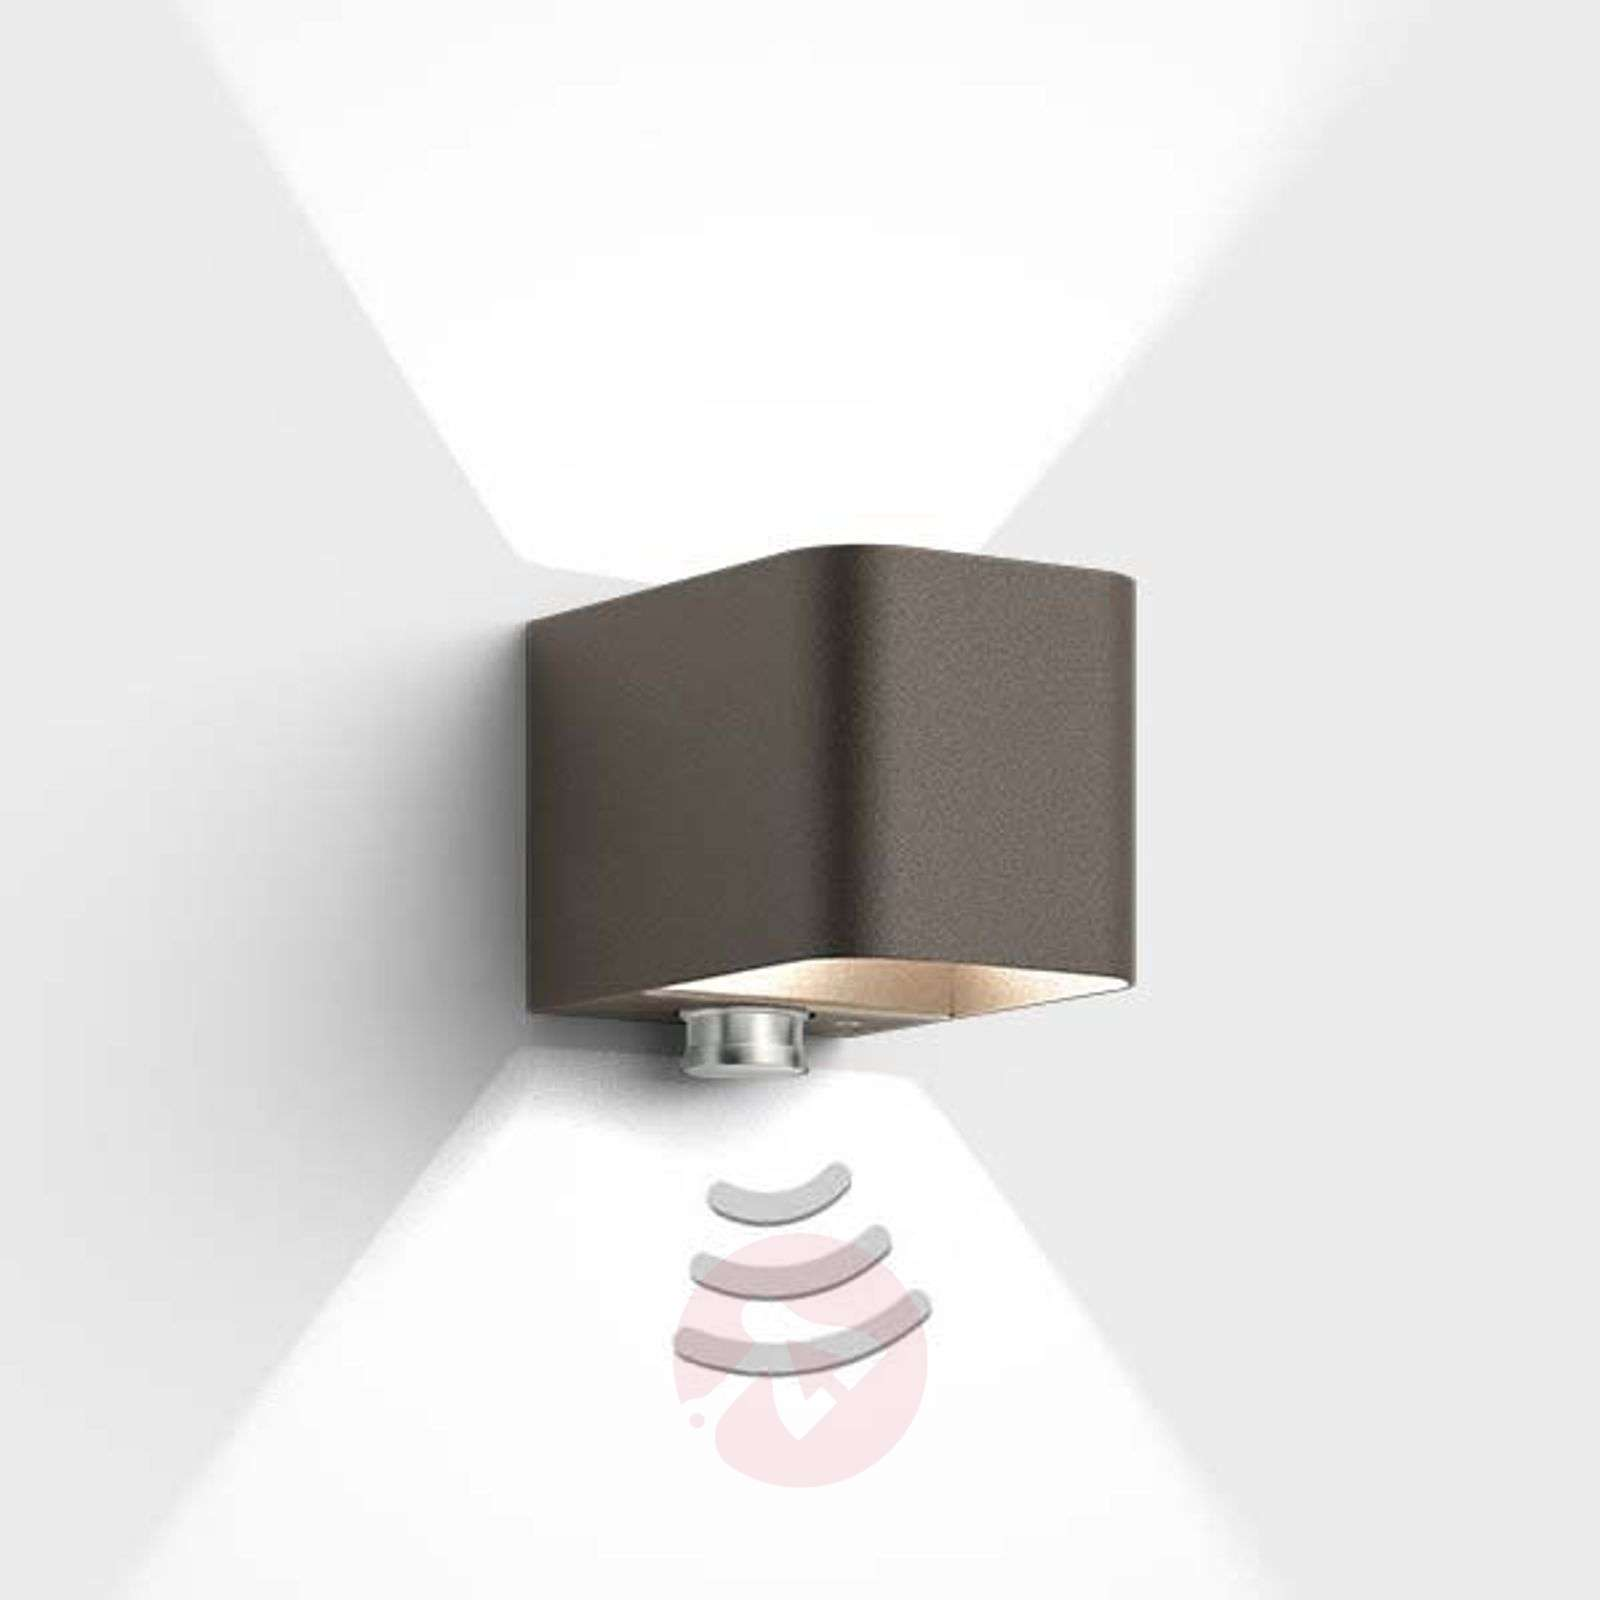 Intro Control LED outdoor wall lamp-5036027X-01